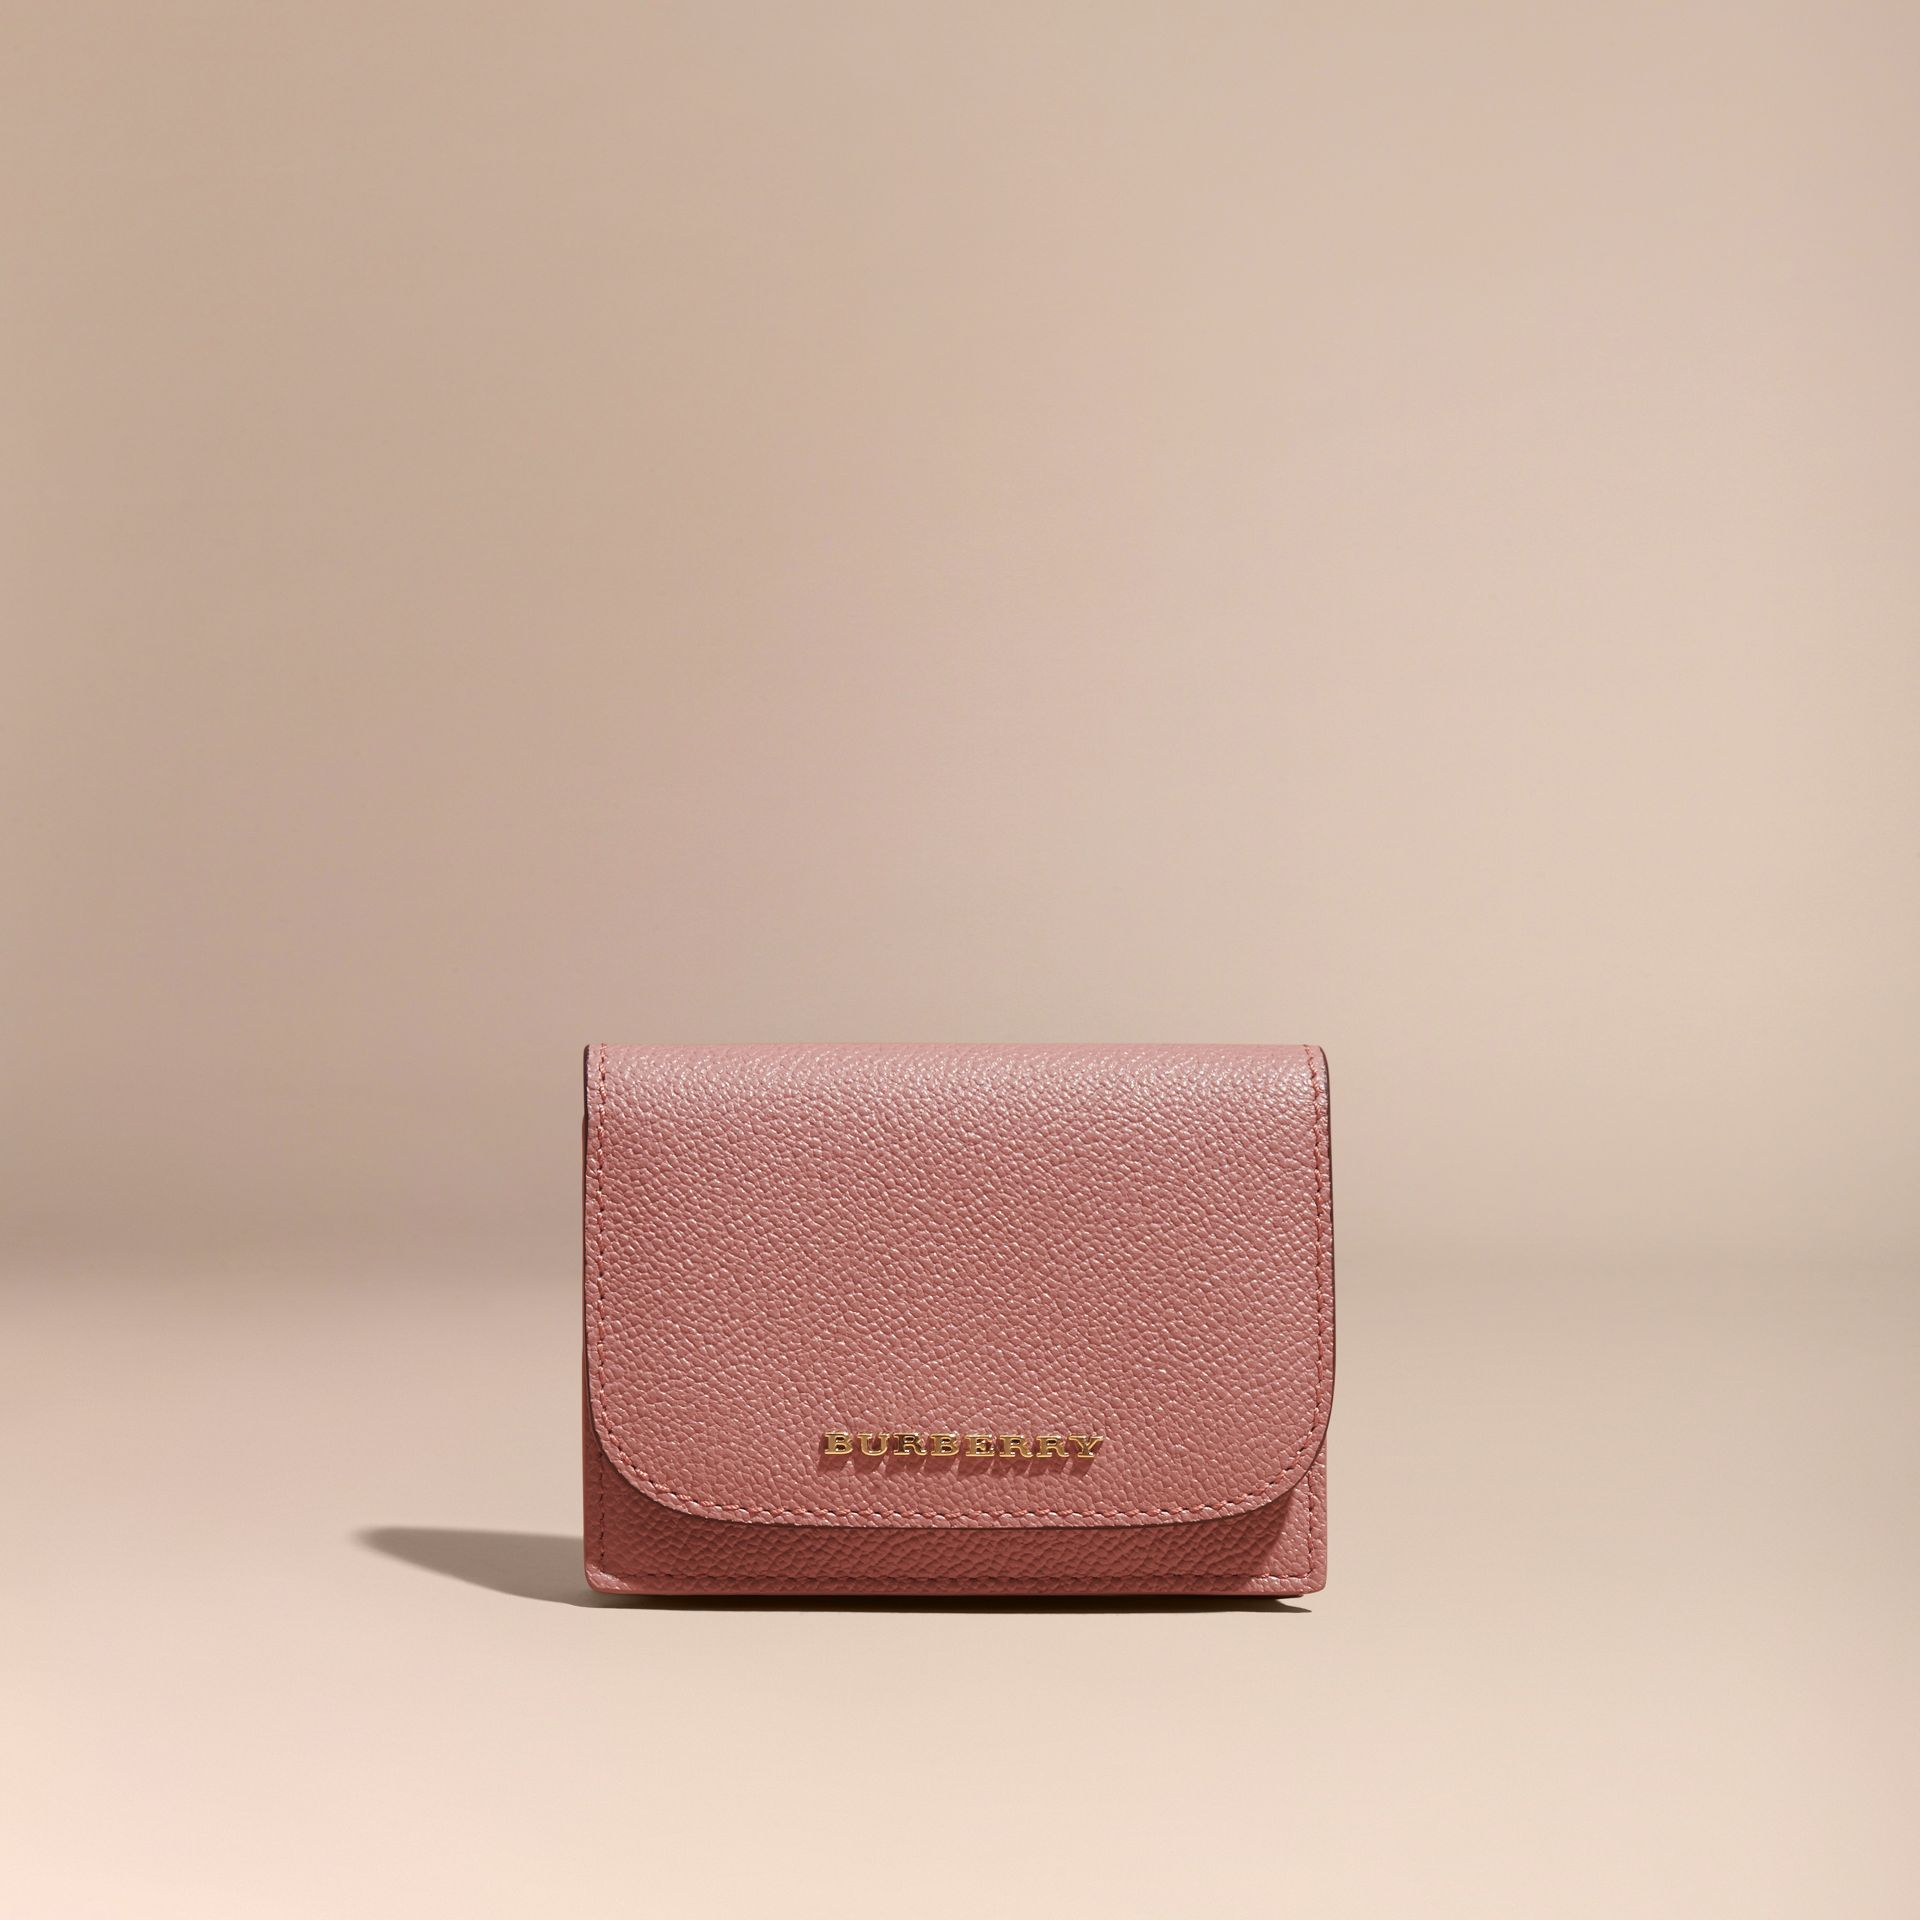 Grainy Leather Card Case in Dusty Pink - Women | Burberry - gallery image 6